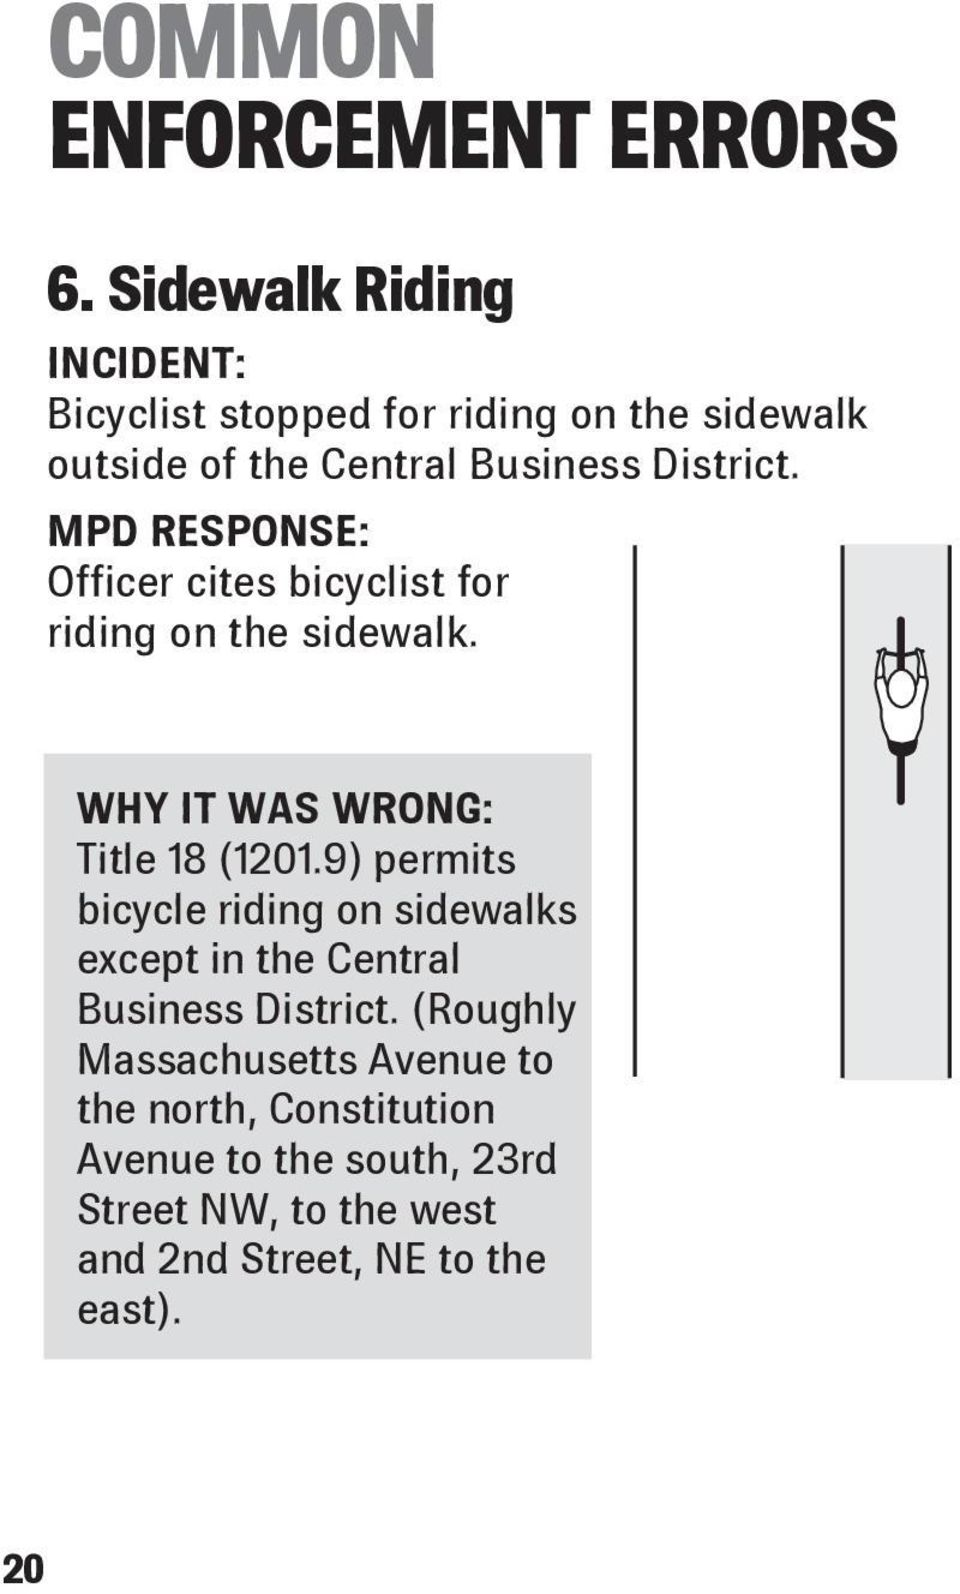 MPD RESPONSE: Officer cites bicyclist for riding on the sidewalk. WHY IT WAS WRONG: Title 18 (1201.